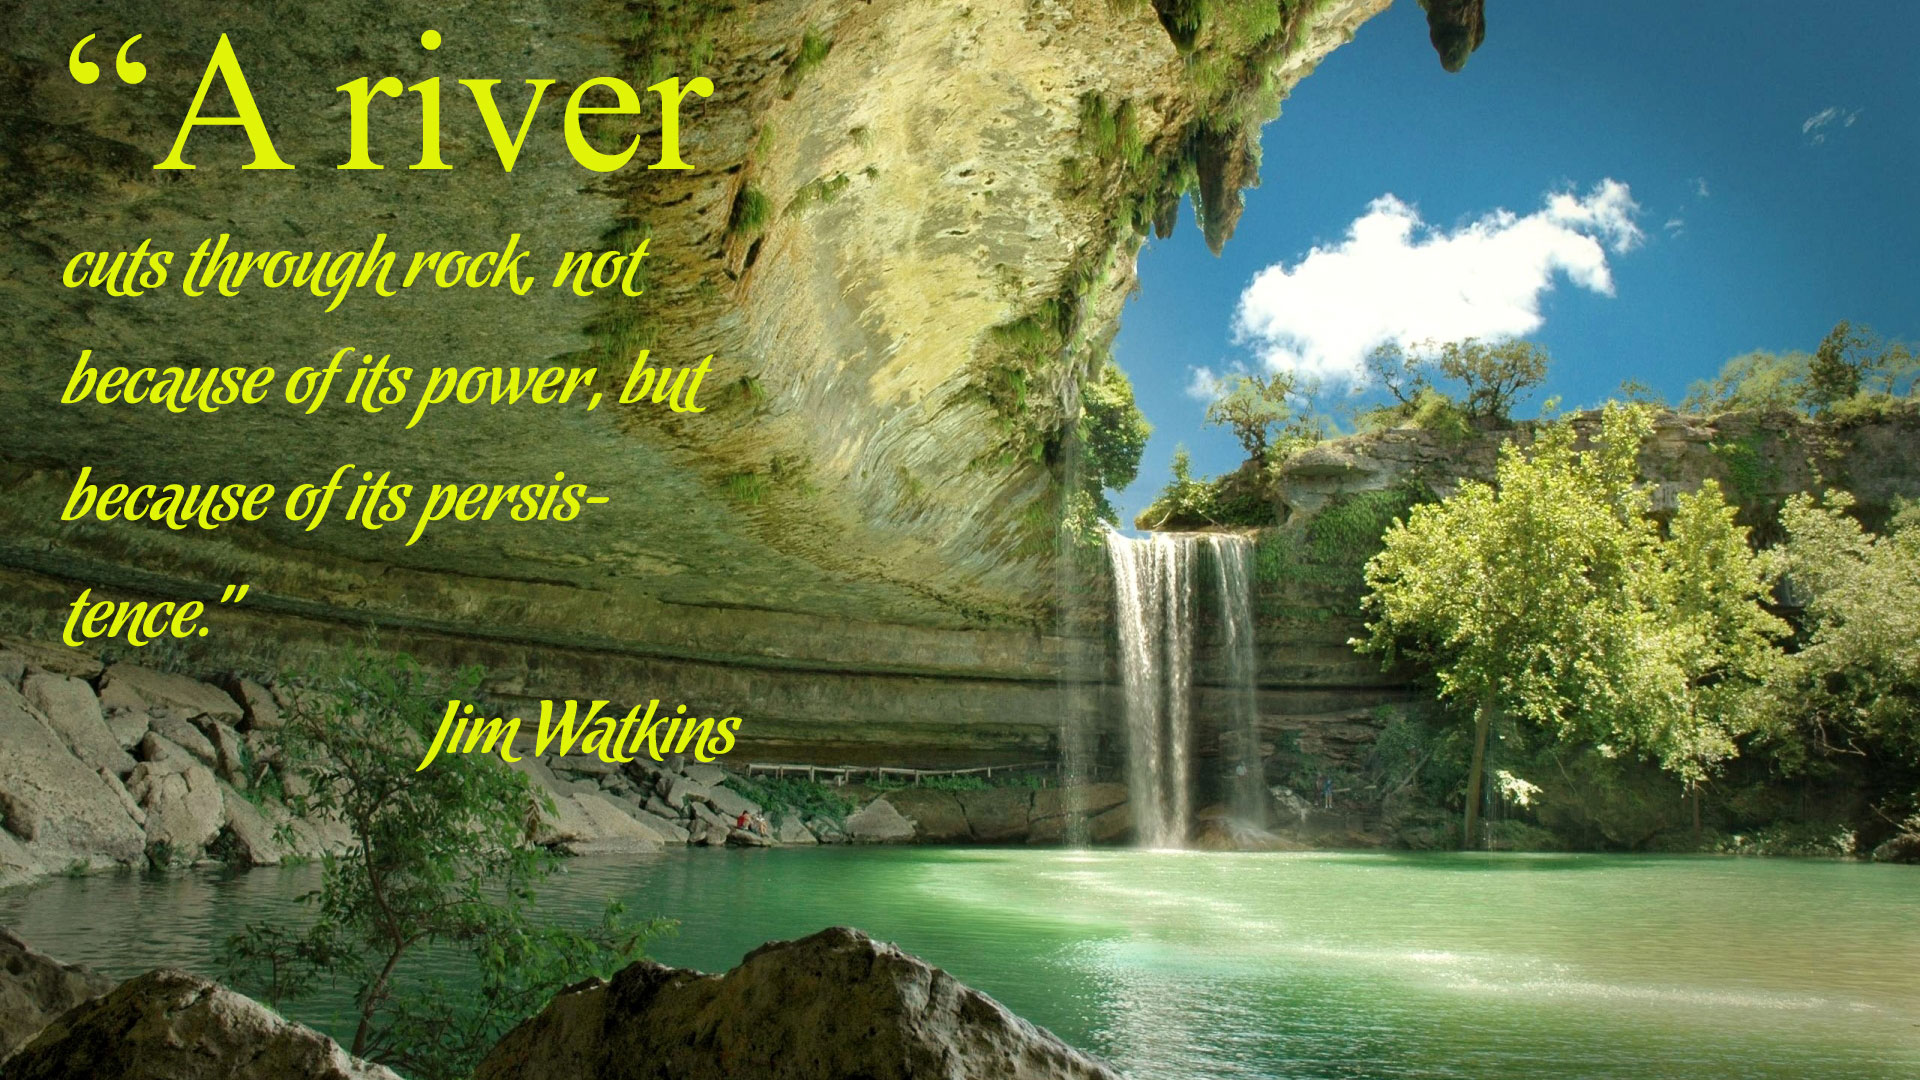 Inspirational Wallpaper Quote by Jim Watkins